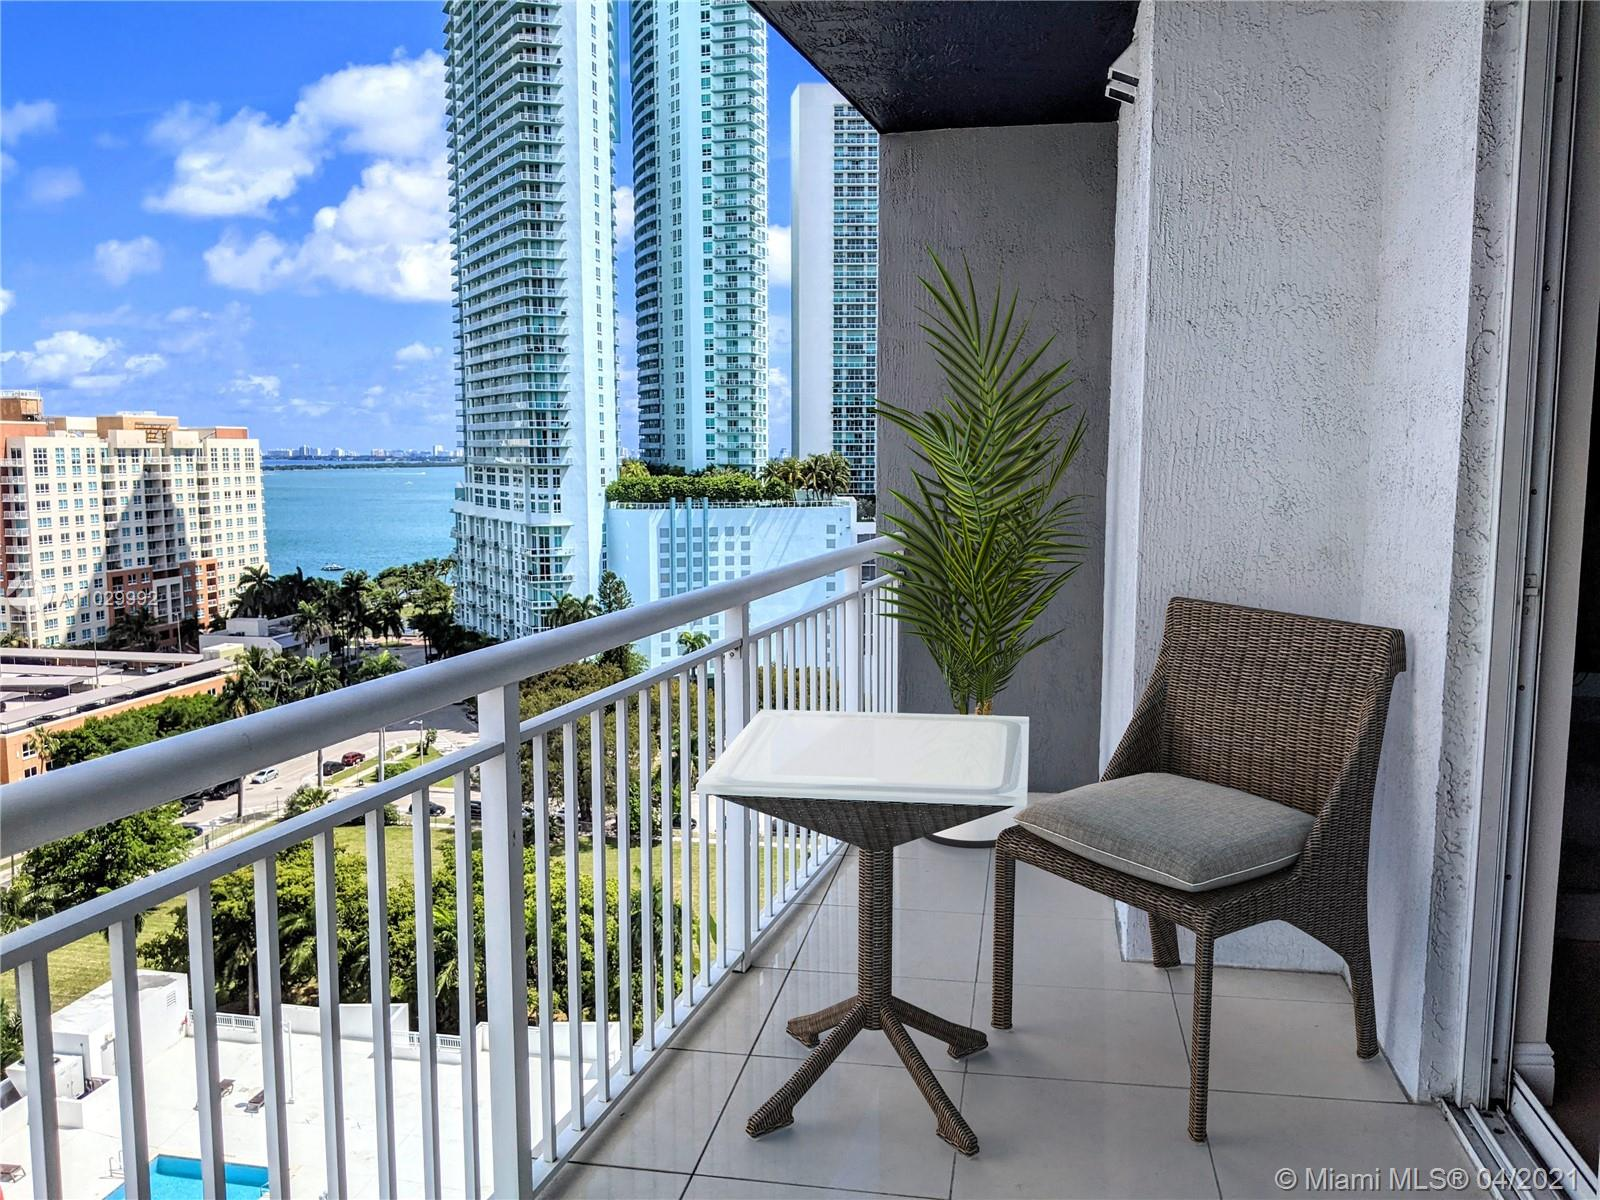 Enjoy beautiful sunrises and sunsets from this 2 bedroom, 2 bath corner unit. Intracoastal and city views through the floor to ceiling bay windows, tile floor throughout, open kitchen with granite countertops, washer and dryer inside unit. 1 assigned covered parking space. 1800 Biscayne Plaza has a modern lobby, fantastic pool area and fully equipped gym, and 24 hour security. Located in the new upcoming area of Edgewater. Close to the performance arts, American Airlines Arena, Bayside, the Art District and a few blocks from Downtown Miami!